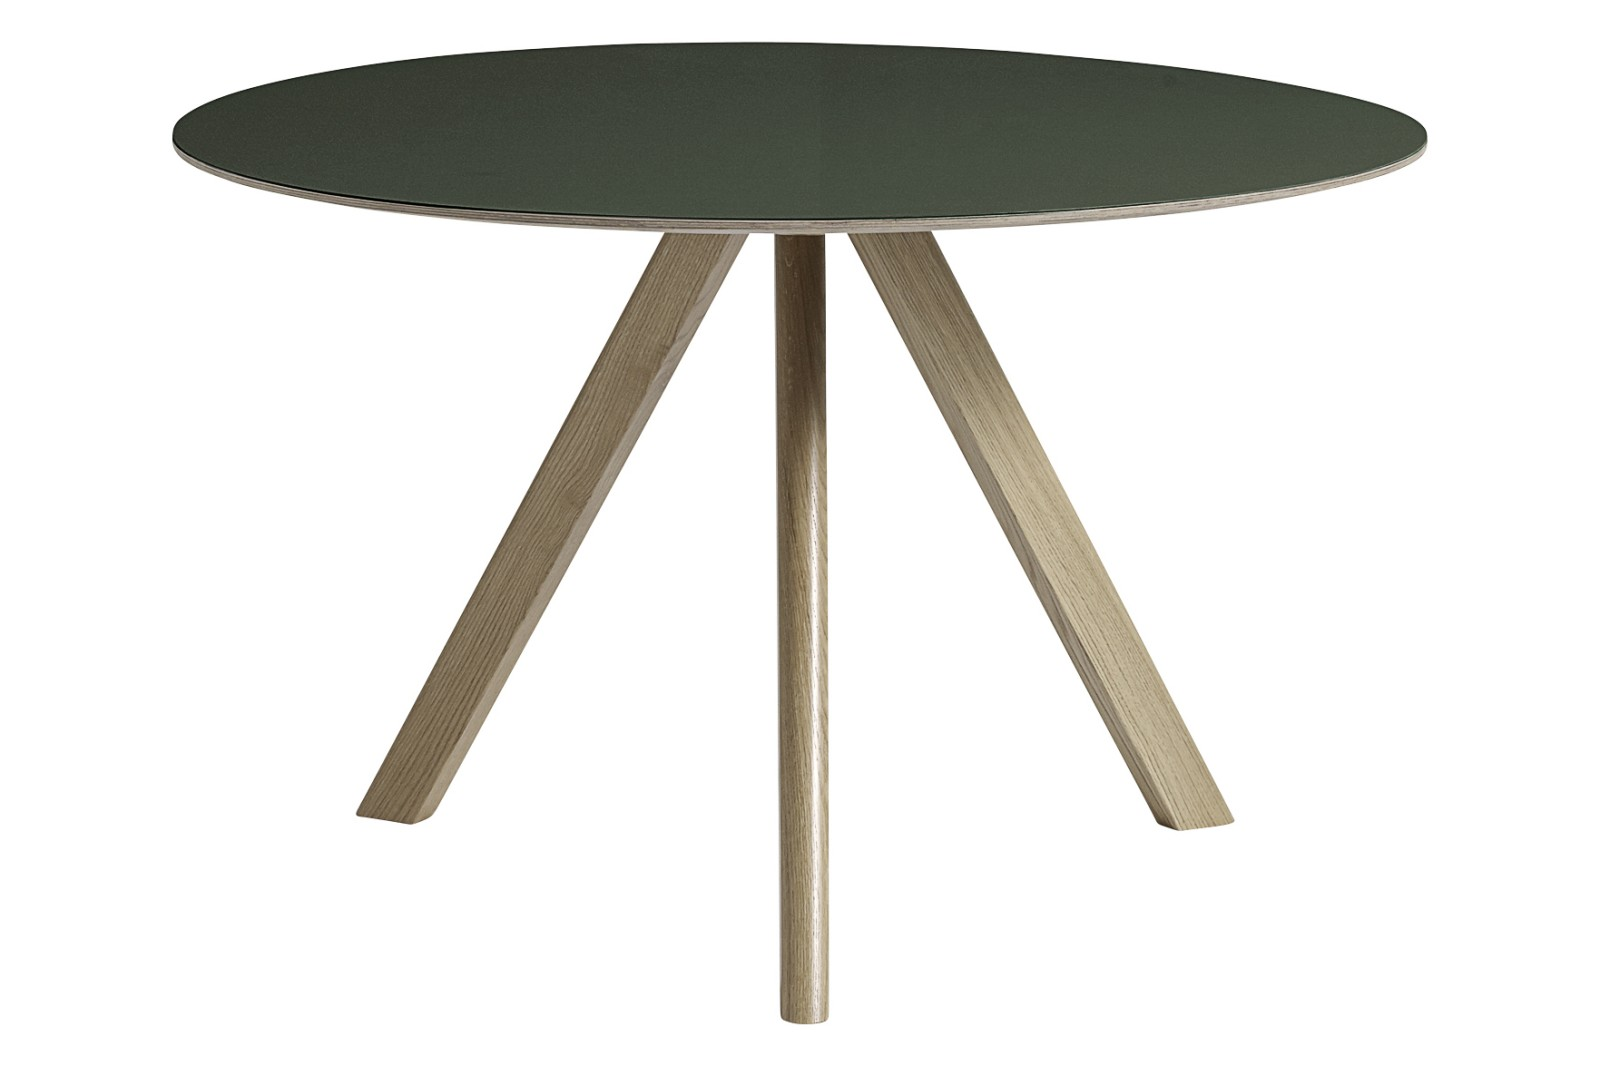 Copenhague Linoleum Top Round Dining Table CPH20 Soap Treated Oak Base, Green Top, Large